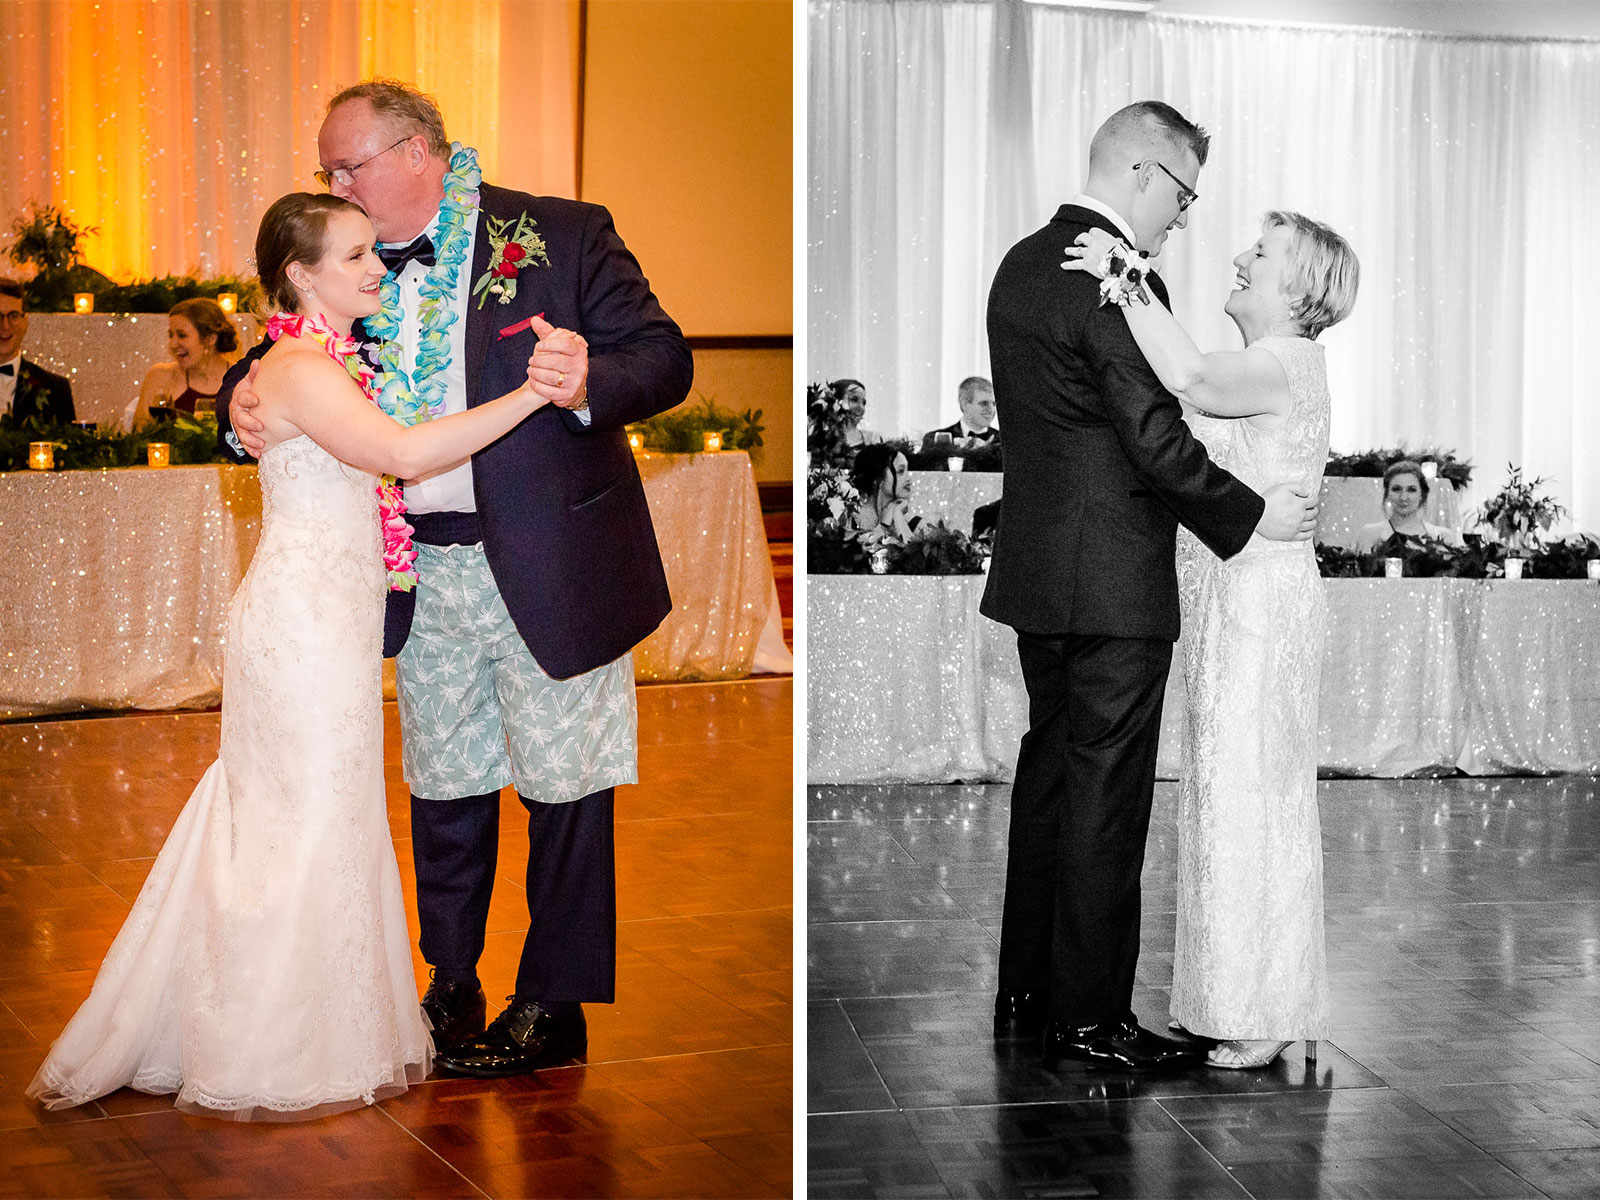 Eric_and_Christy_Photography_Blog_Wedding_Erica_Mike-75-76